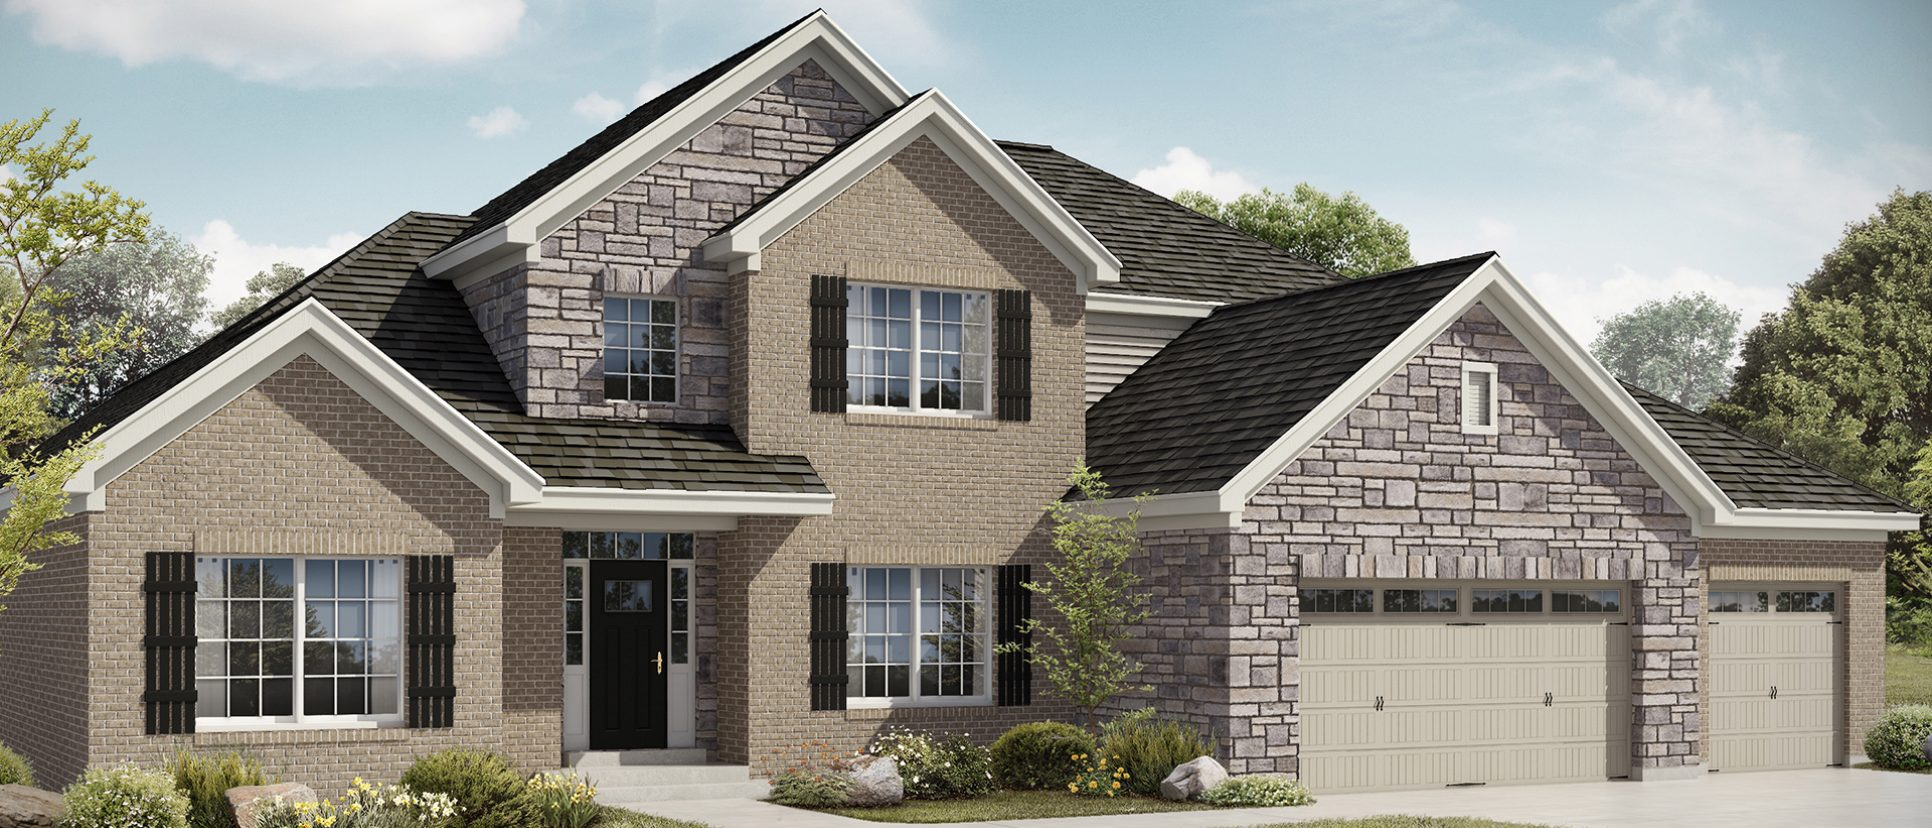 Rendering of The Triple Crown in Bridle Creek Ranch. A custom home by Design Homes and Development.